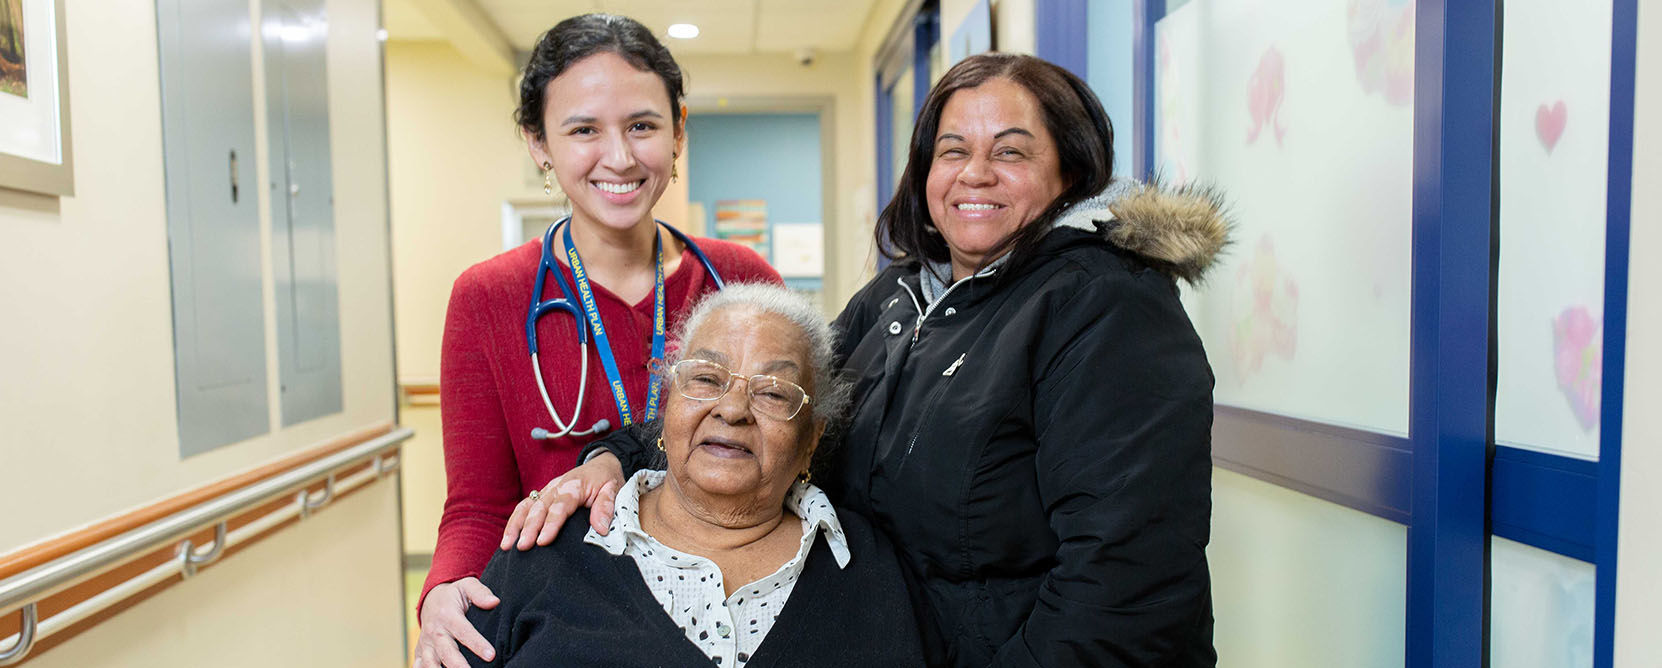 Patient poses with daughter and doctor